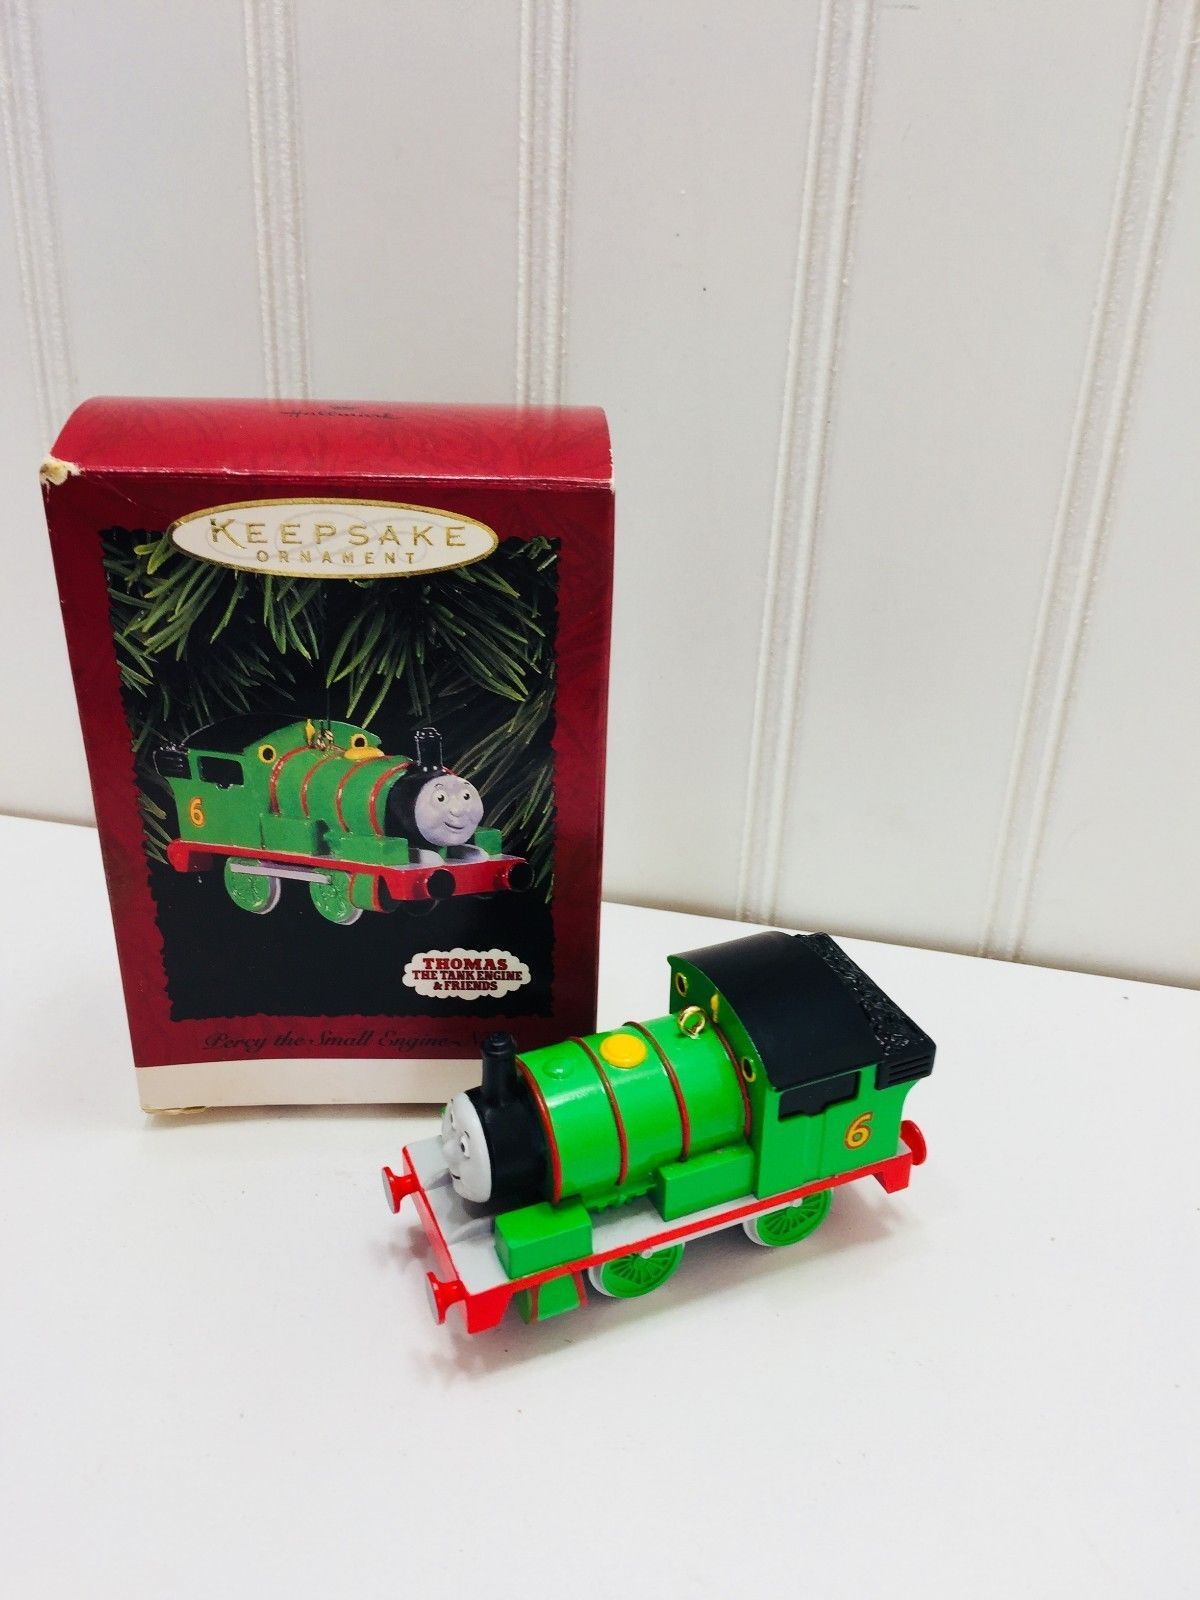 Primary image for 1996 HALLMARK ORNAMENT PERCY THE SMALL ENGINE NO6 23160